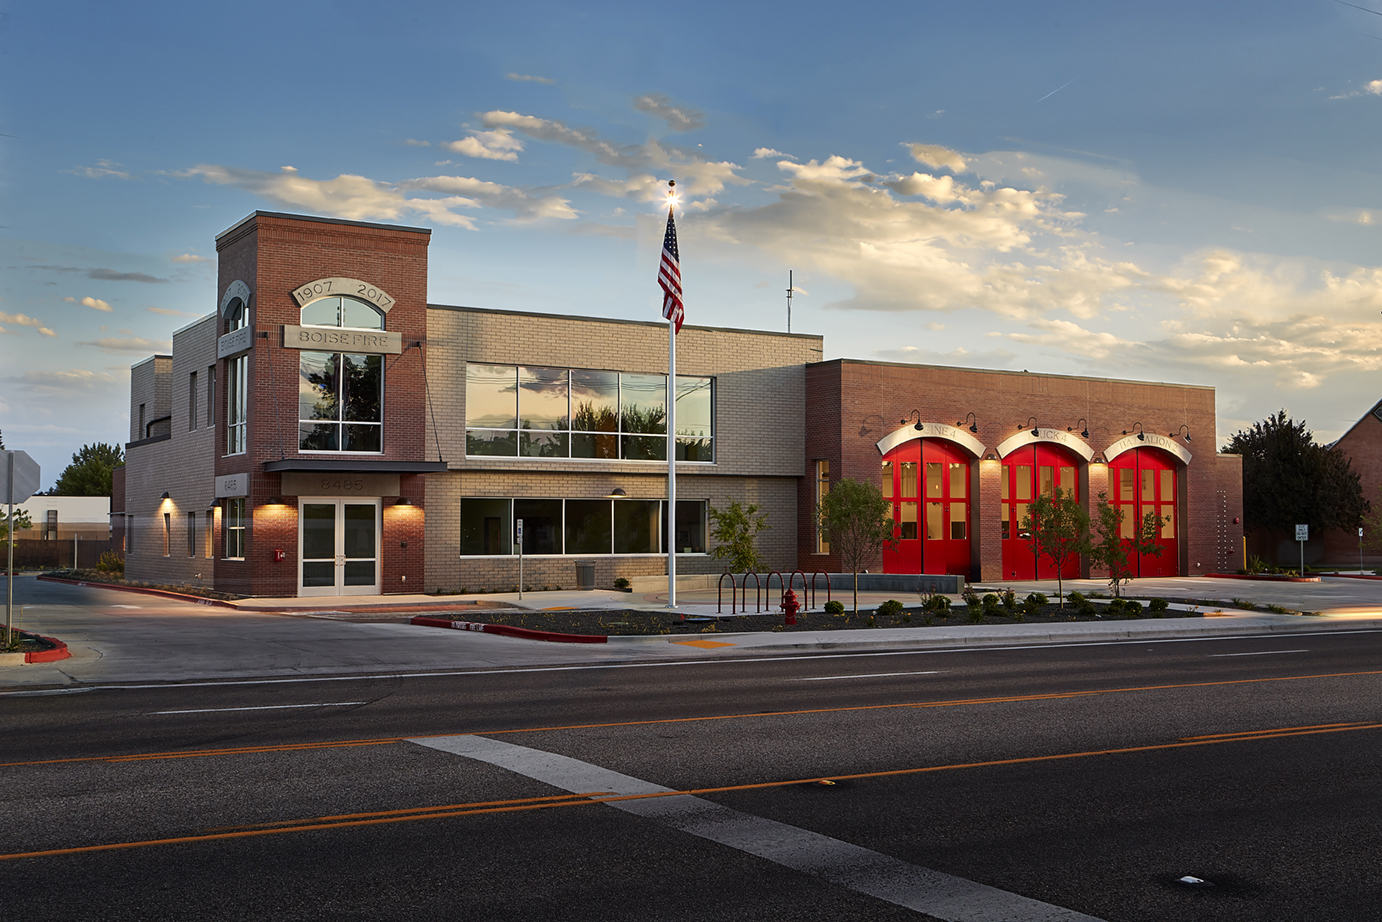 Seattle Fire Station Design Expect TCA Architecture designed this fire station for the City of Boise